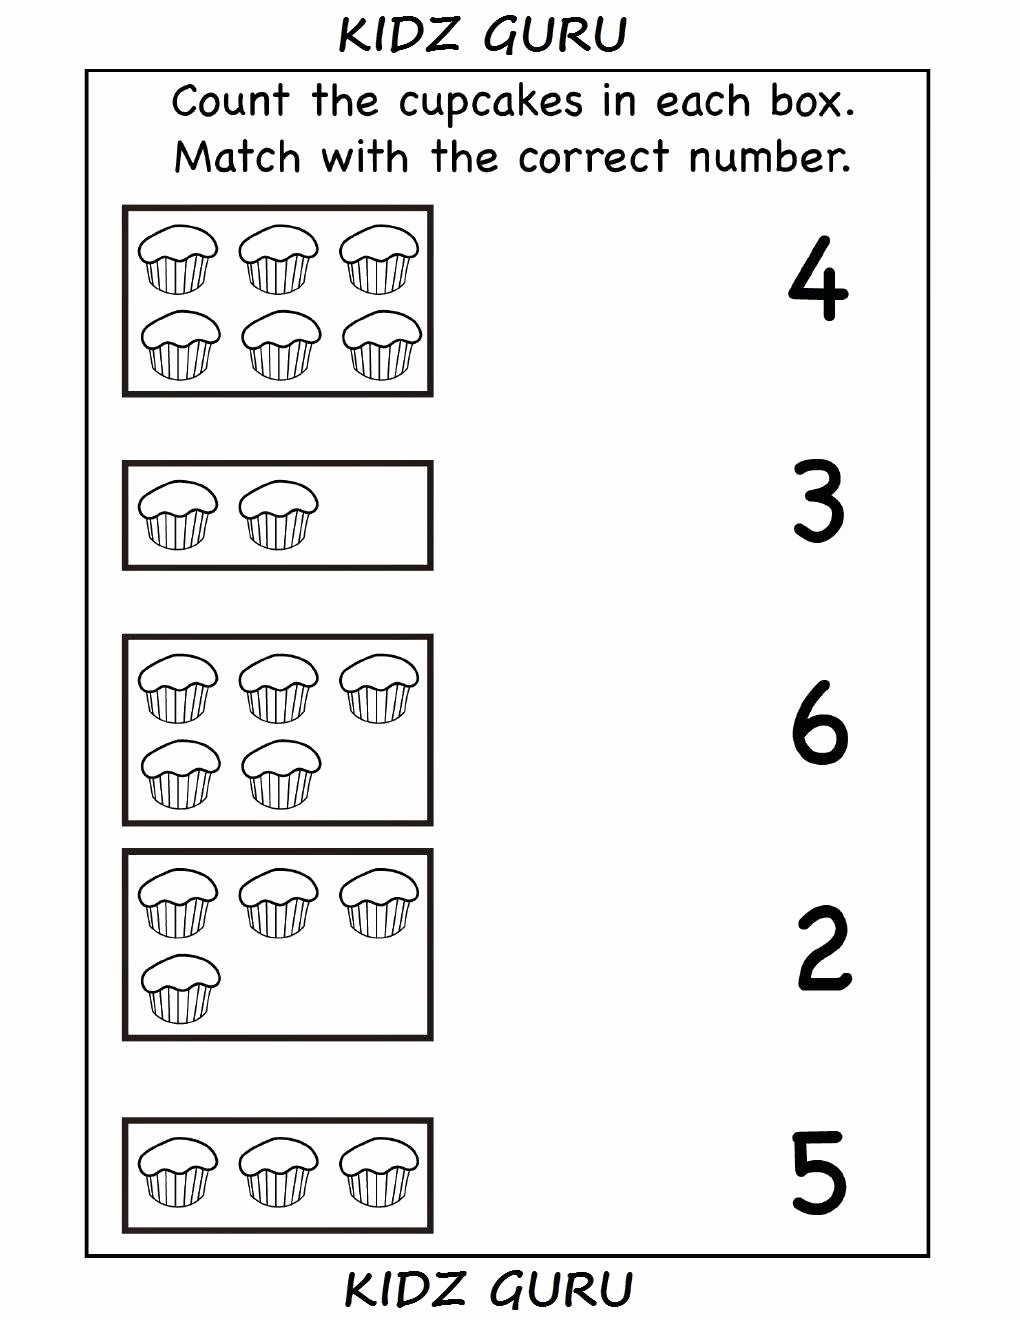 Readiness Worksheets for Preschoolers Best Of Worksheet Kindergarten Worksheets Printable Preeadiness